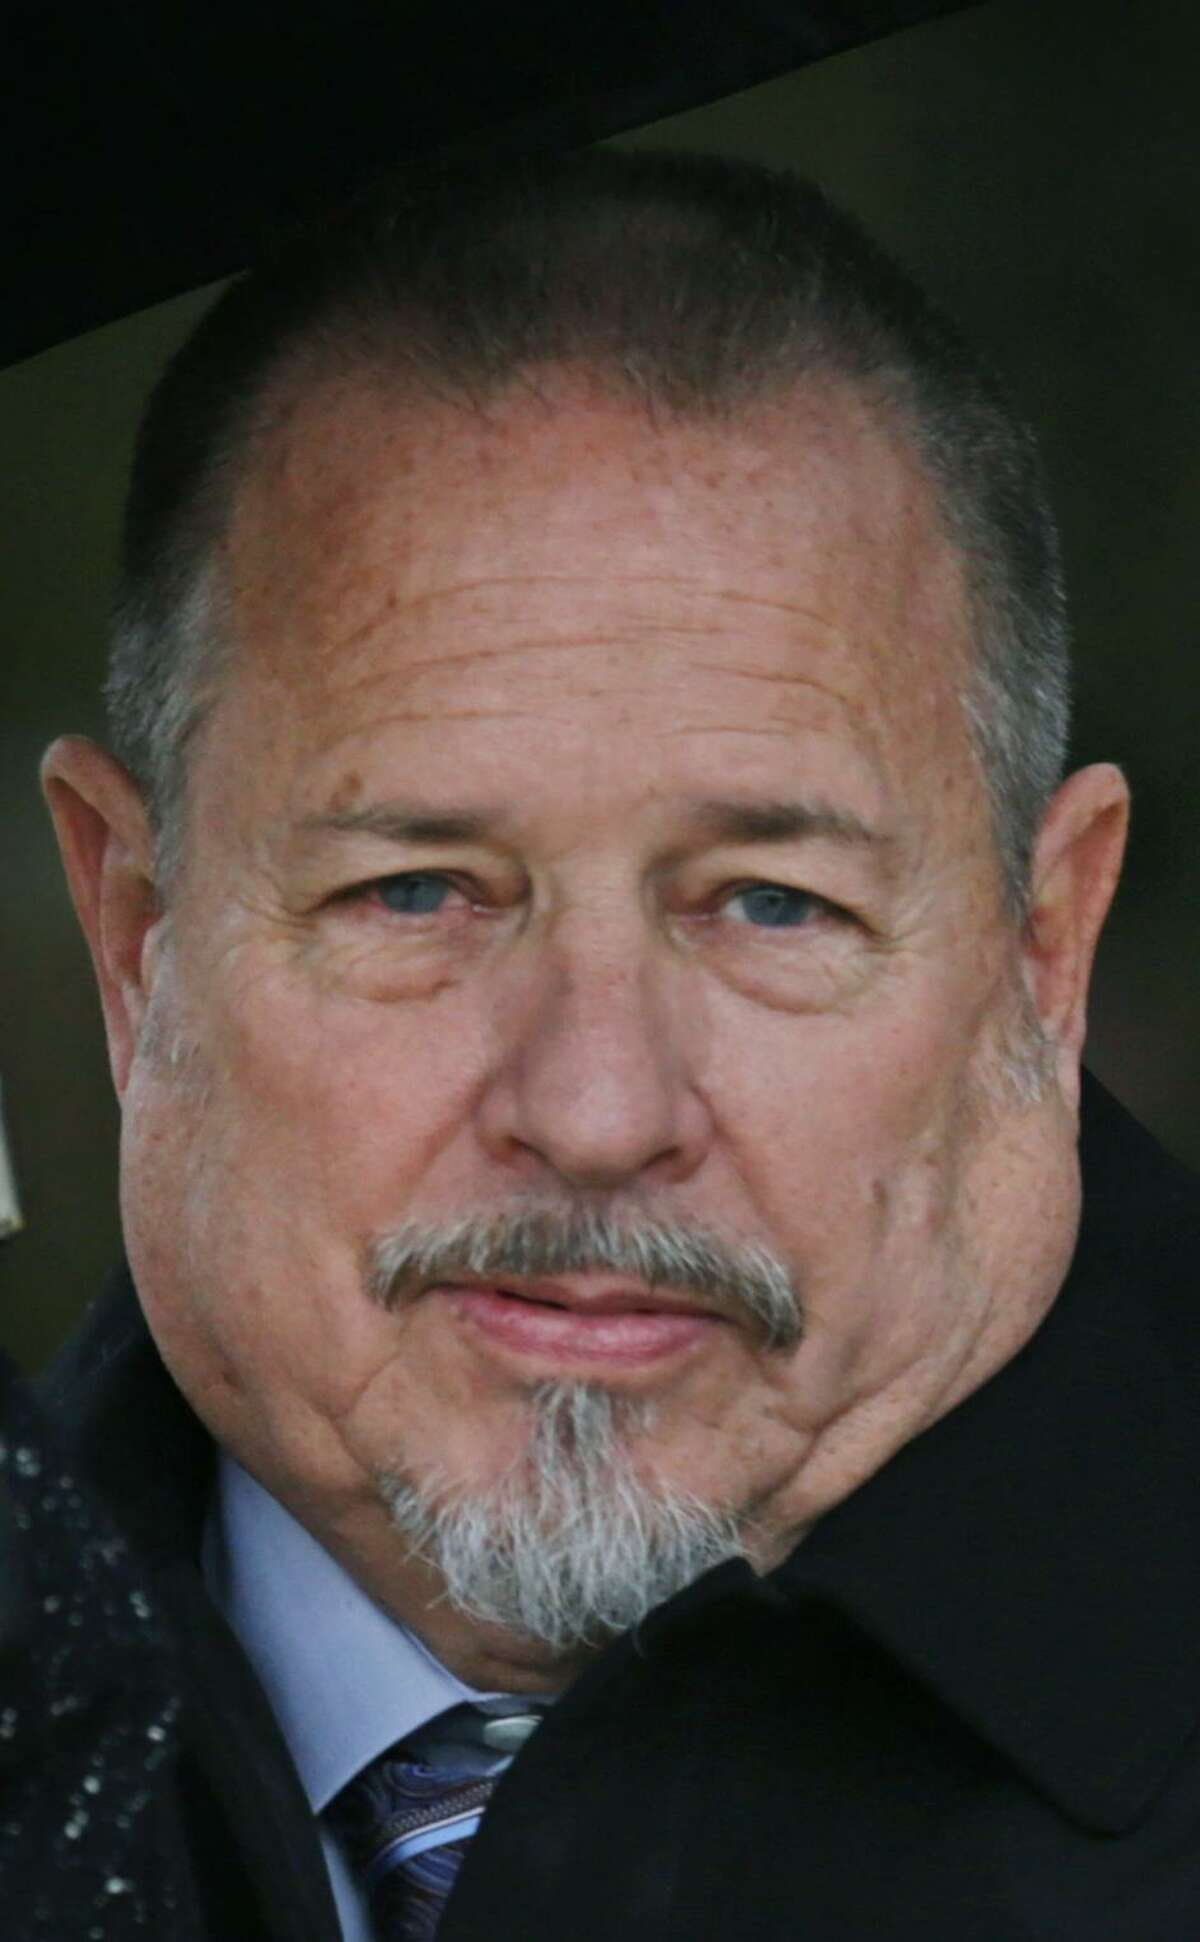 Jeff Pike, the former national president of the Bandidos Motorcycle Club, is on trial on racketeering charges.